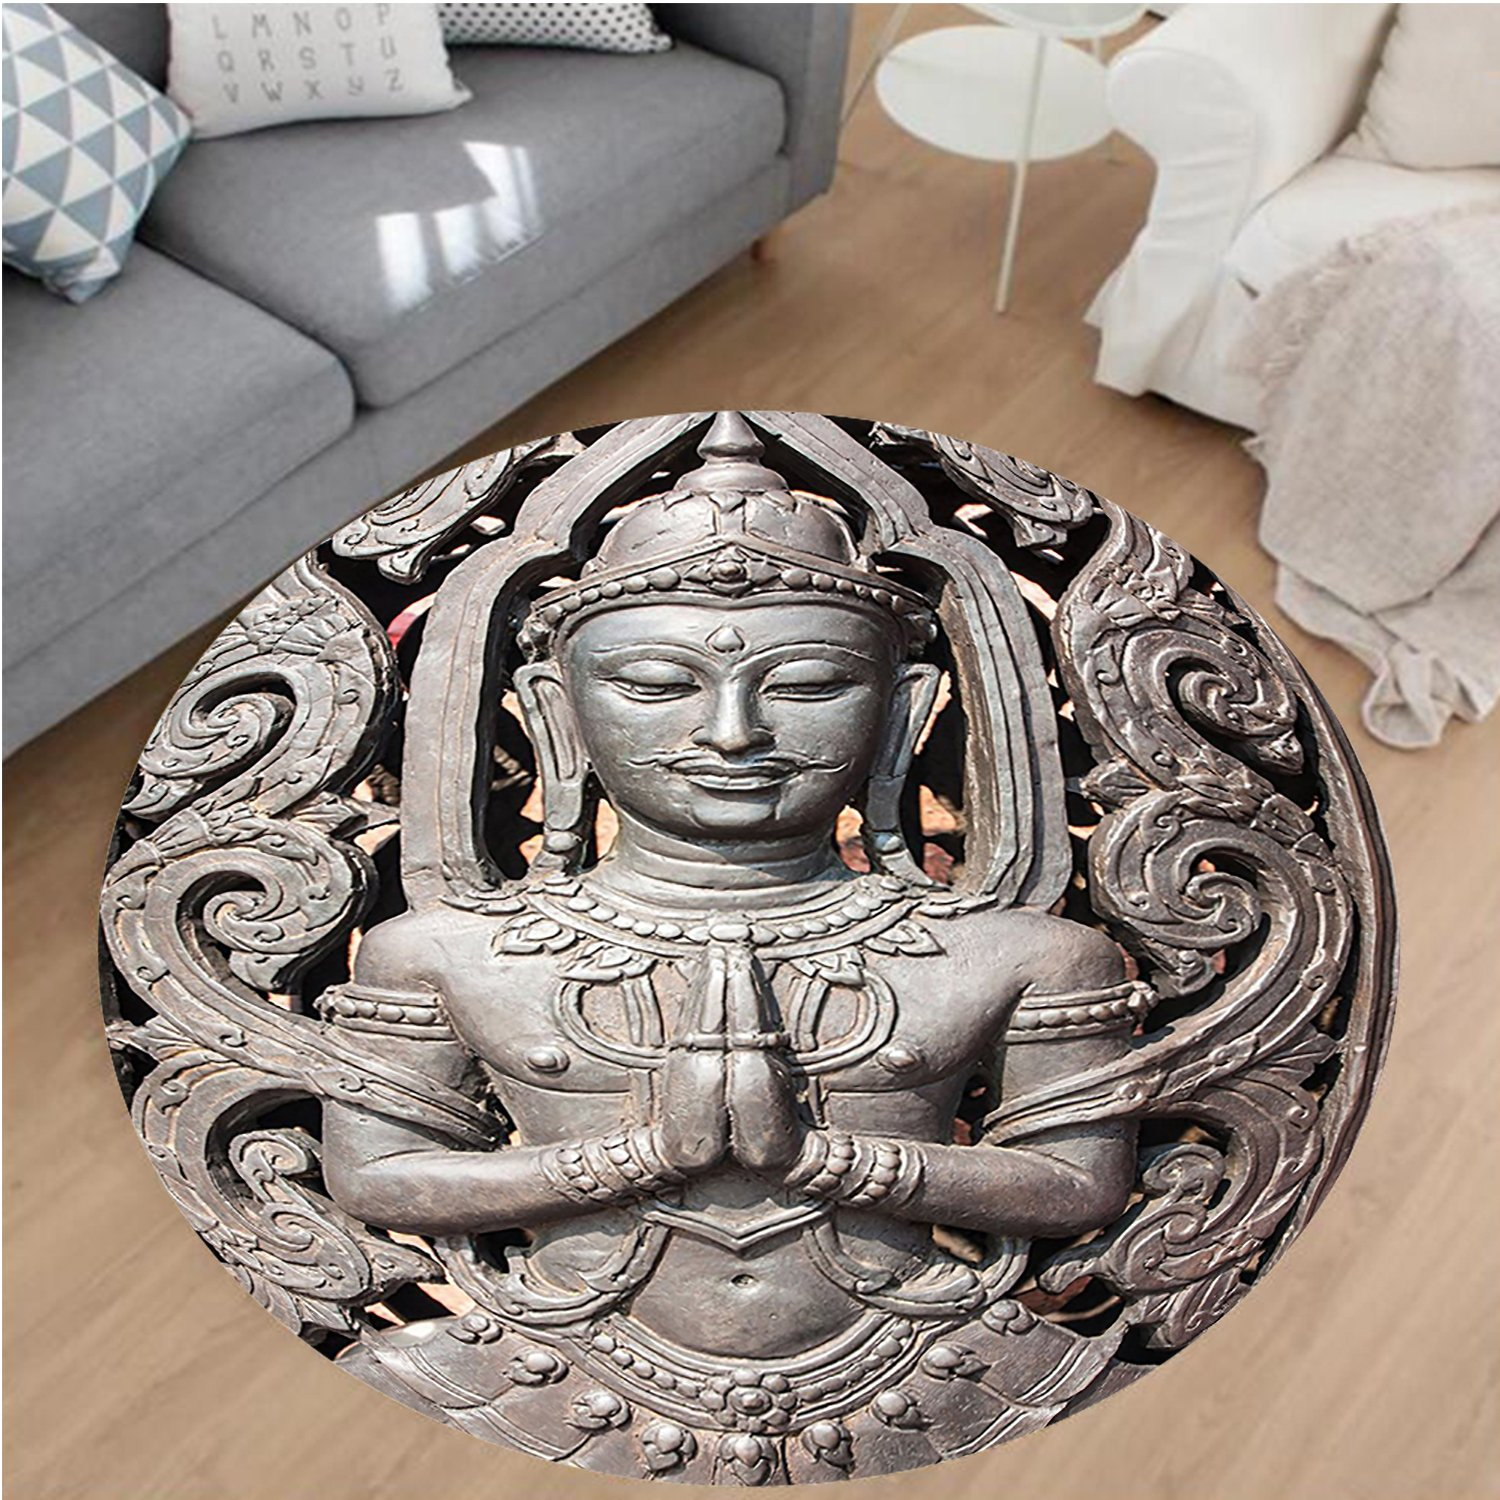 Nalahome Modern Flannel Microfiber Non-Slip Machine Washable Round Area Rug-uddha in Traditional Thai Art with Swirling Floral Patterns Carving Japanese Decor Bronze area rugs Home Decor-Round 32''